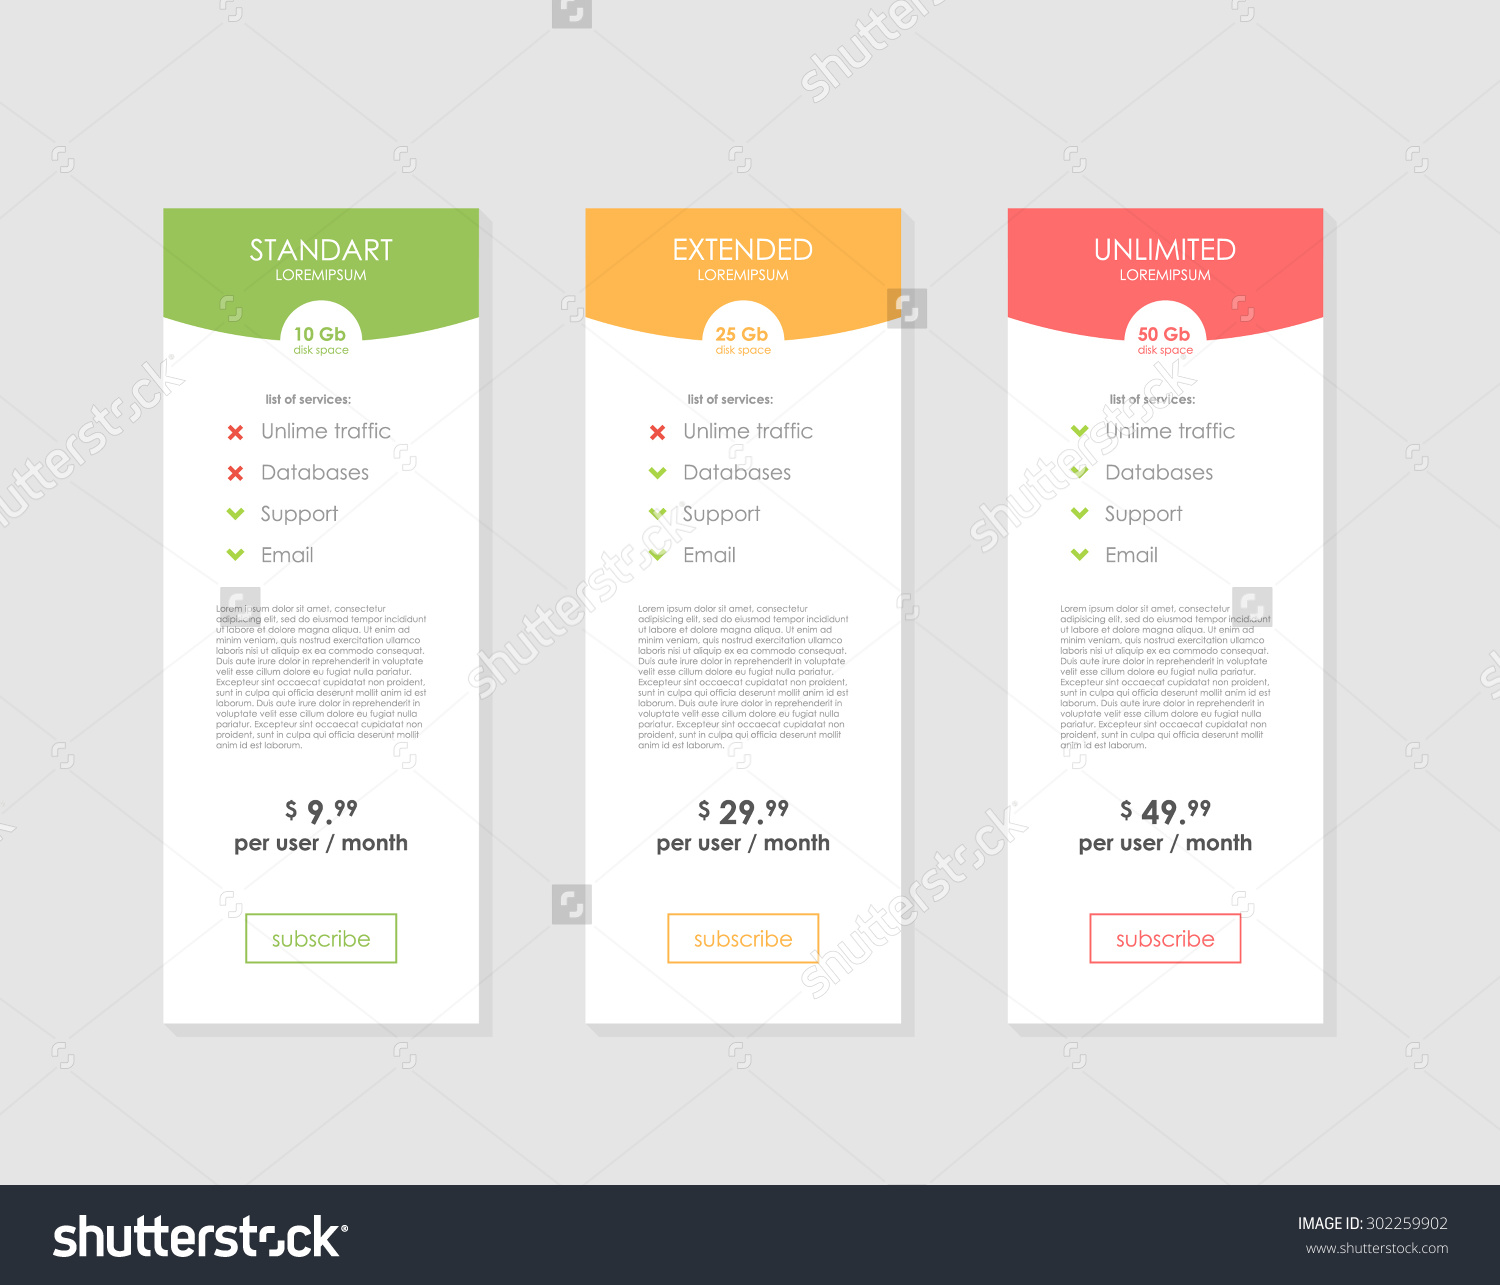 table graphic design. pricing table template with three plan type. graphic design on gray background. tariffs e